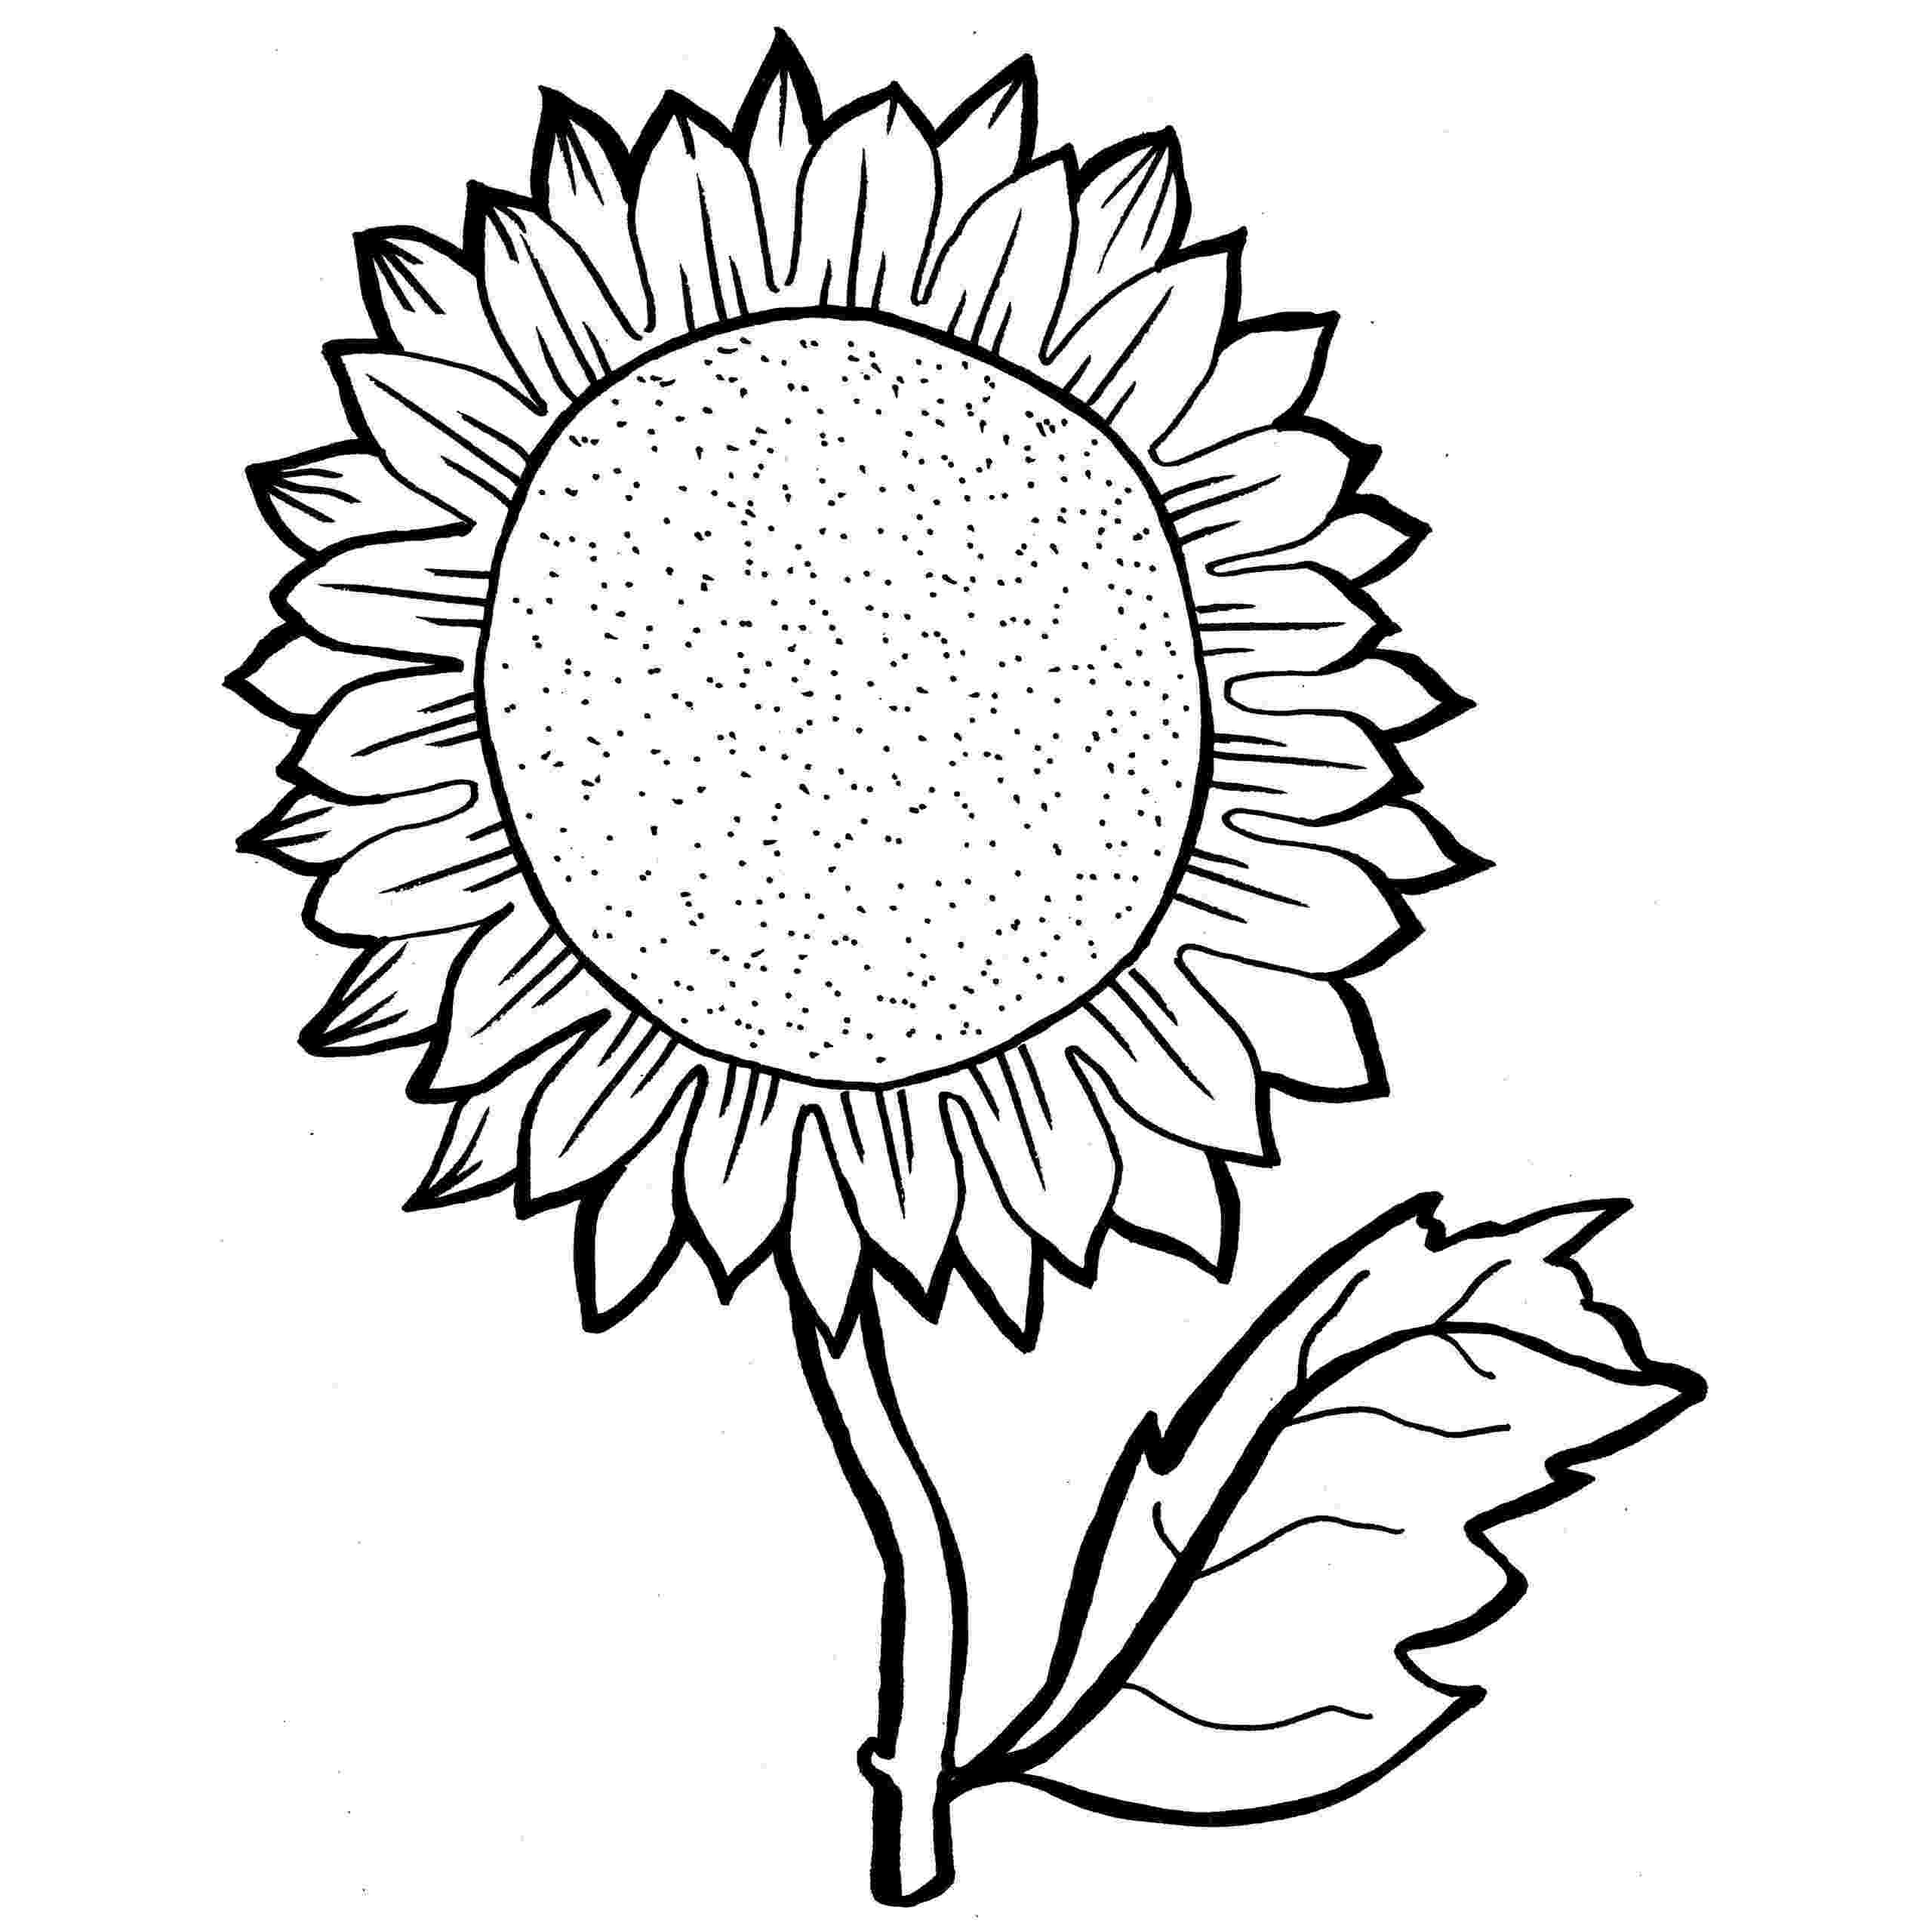 sunflower for coloring sunflower coloring pages selfcoloringpagescom clipartsco for sunflower coloring